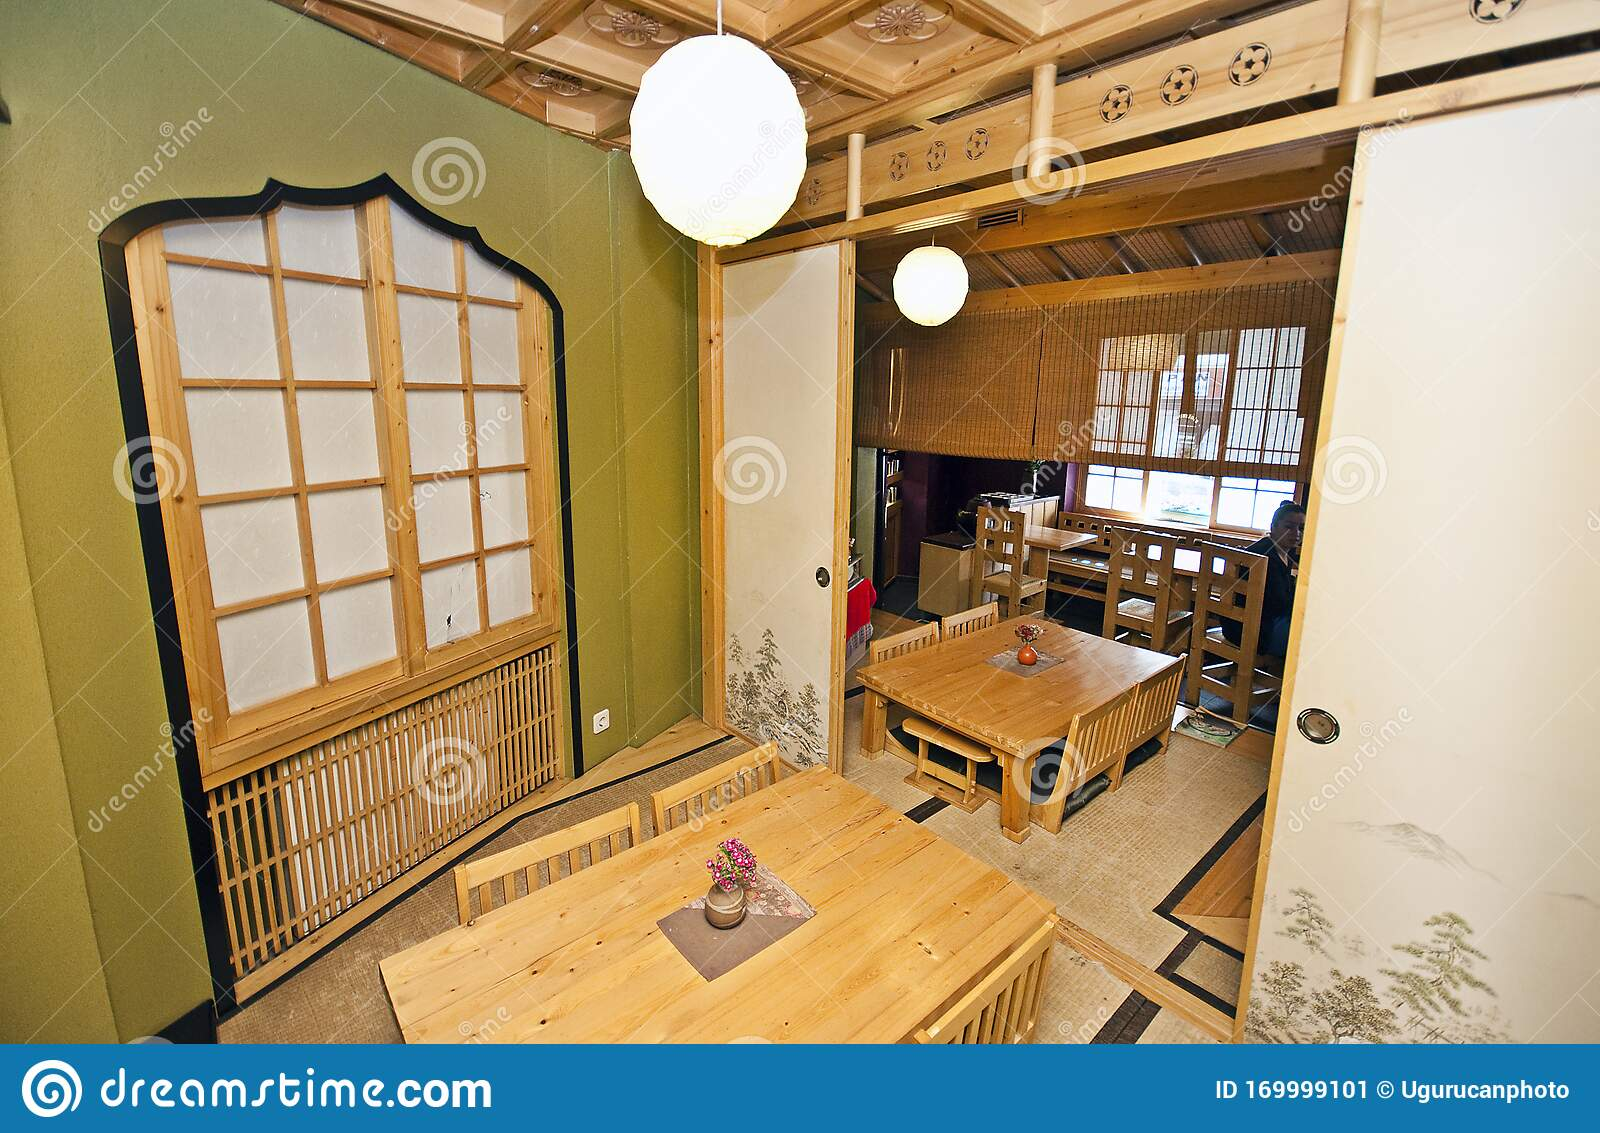 Traditional Japanese Restaurant Interior And Design Editorial Photo Image Of Delicious Decor 169999101